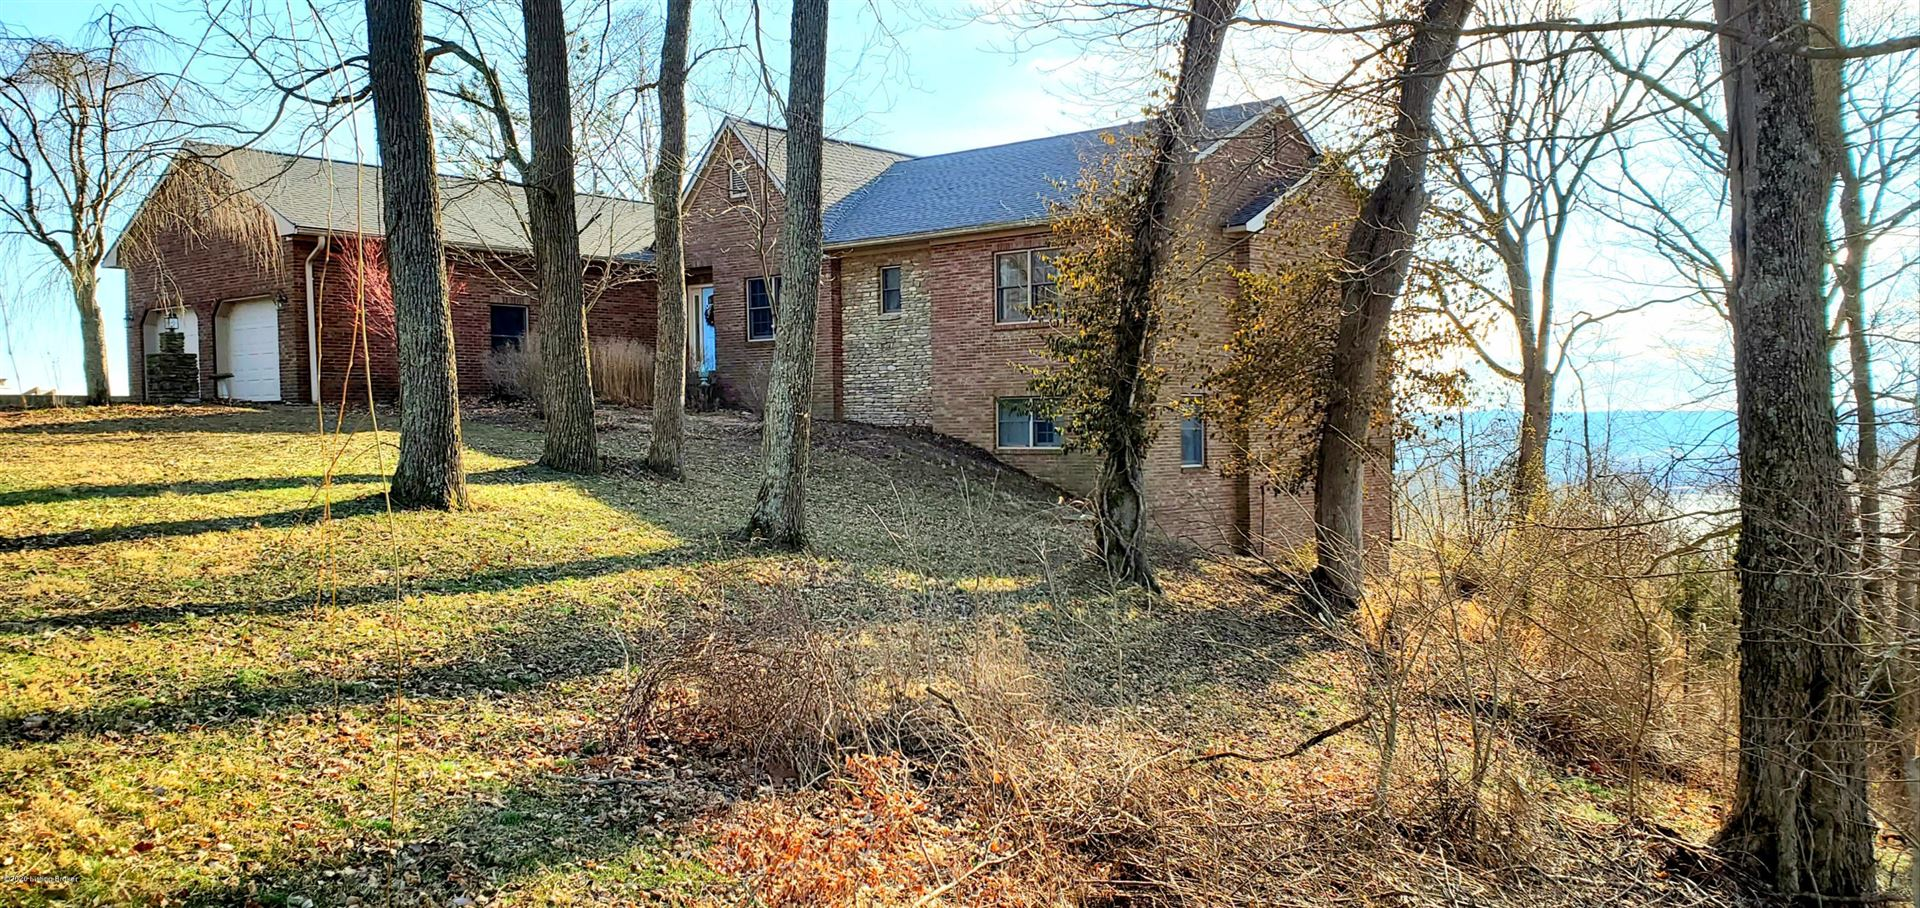 Property Image Of 2265 S Logans Point Dr In Hanover, In